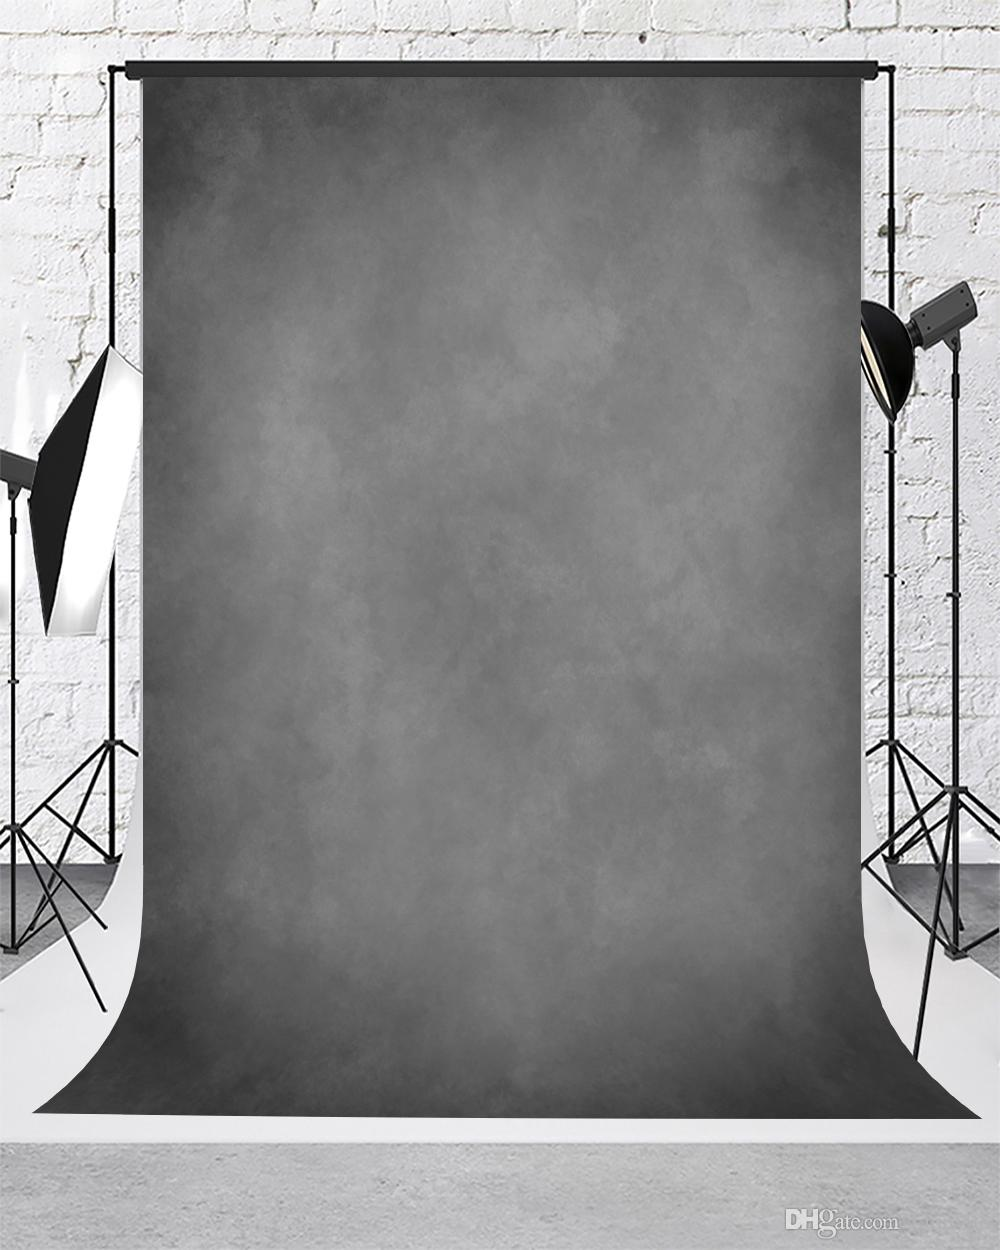 2020 Kate Black Abstract Photography Backdrops Old Master Texture Portrait Photo Background Adults Kids Girls Portrait Backdrop For Photoshoot From Fanny08 32 73 Dhgate Com